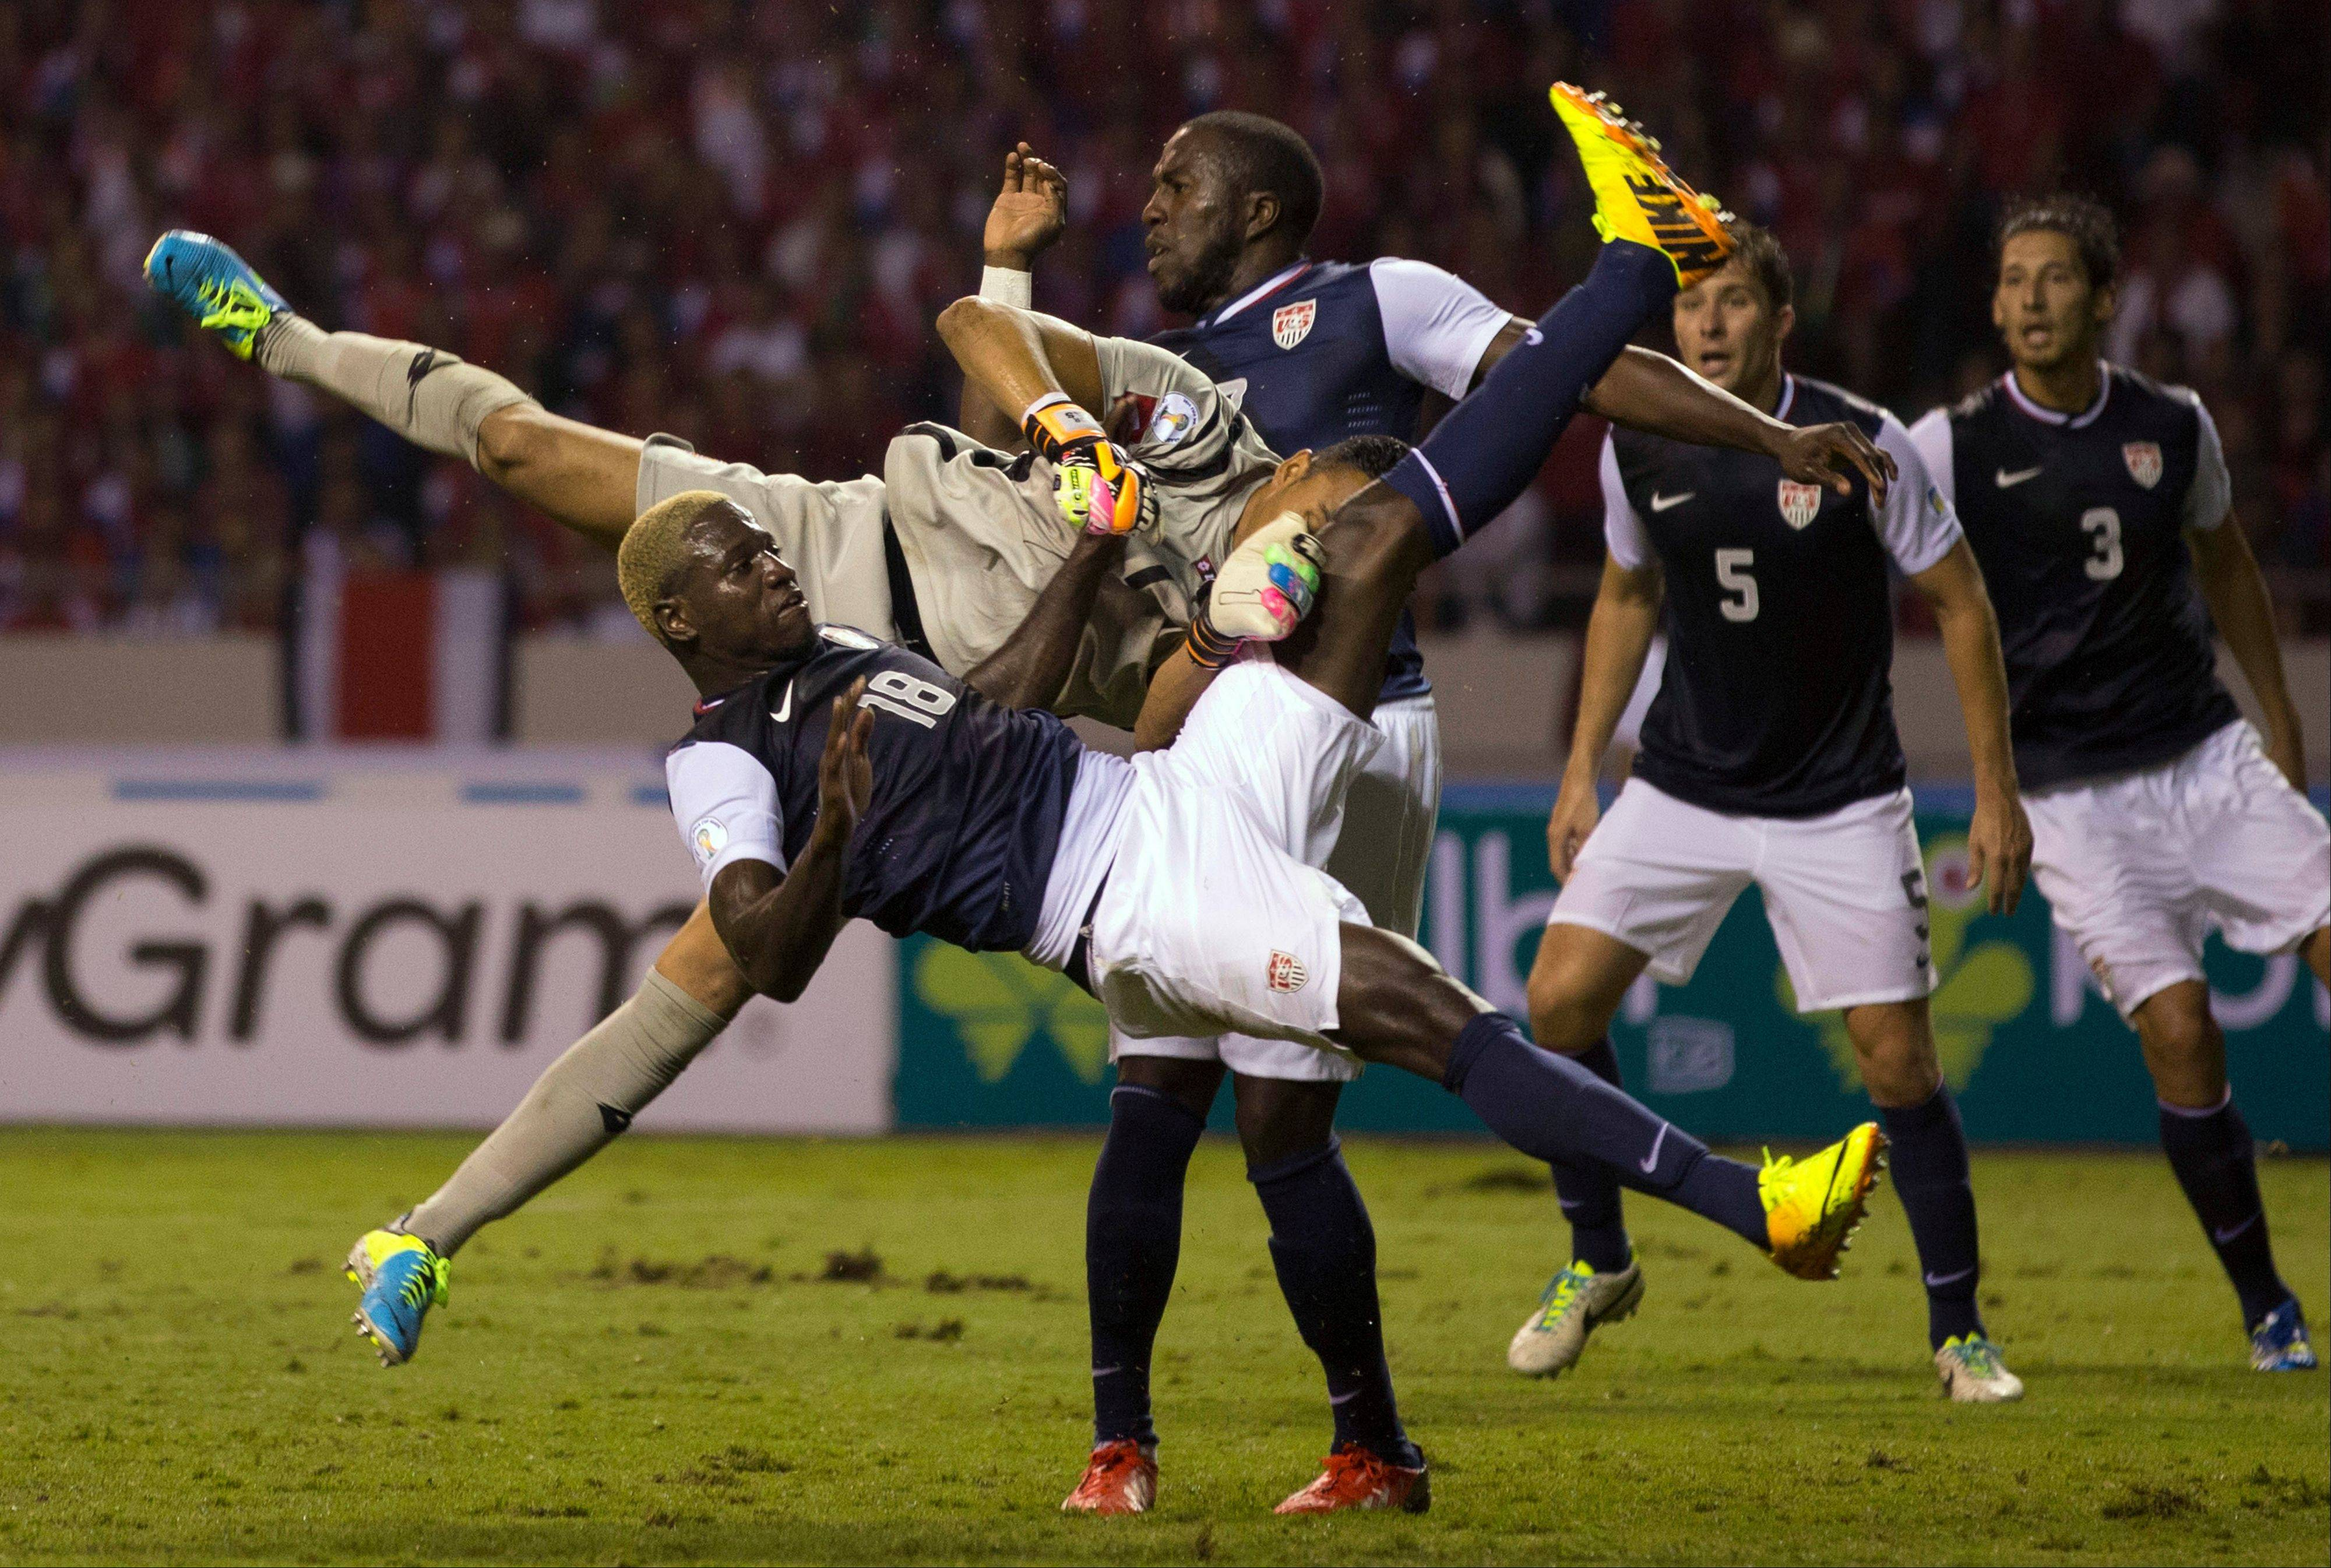 The United States� Eddie Johnson, front, collides with Costa Rica�s goalkeeper Keylor Navas, who blocked his attempt to score during a 2014 World Cup qualifier Friday in San Jose, Costa Rica. Behind at center is the United States� Jozy Altidore.